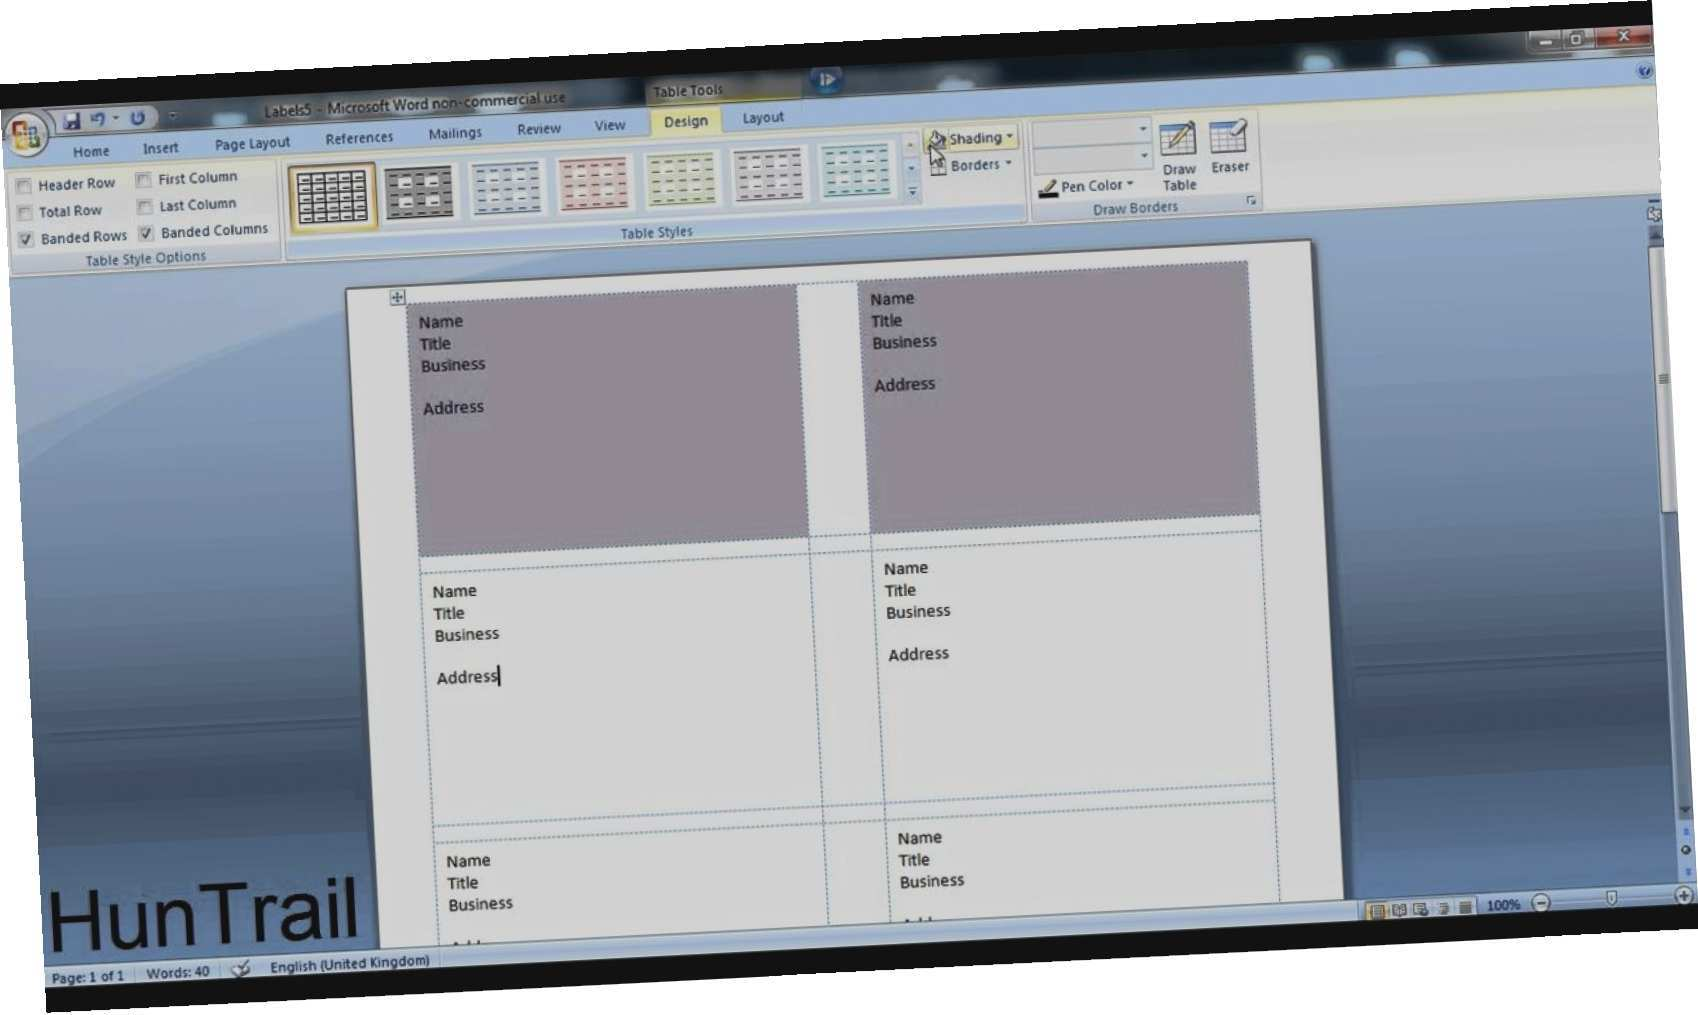 47 Customize Business Card Template Word 2013 Download Maker with Business Card Template Word 2013 Download